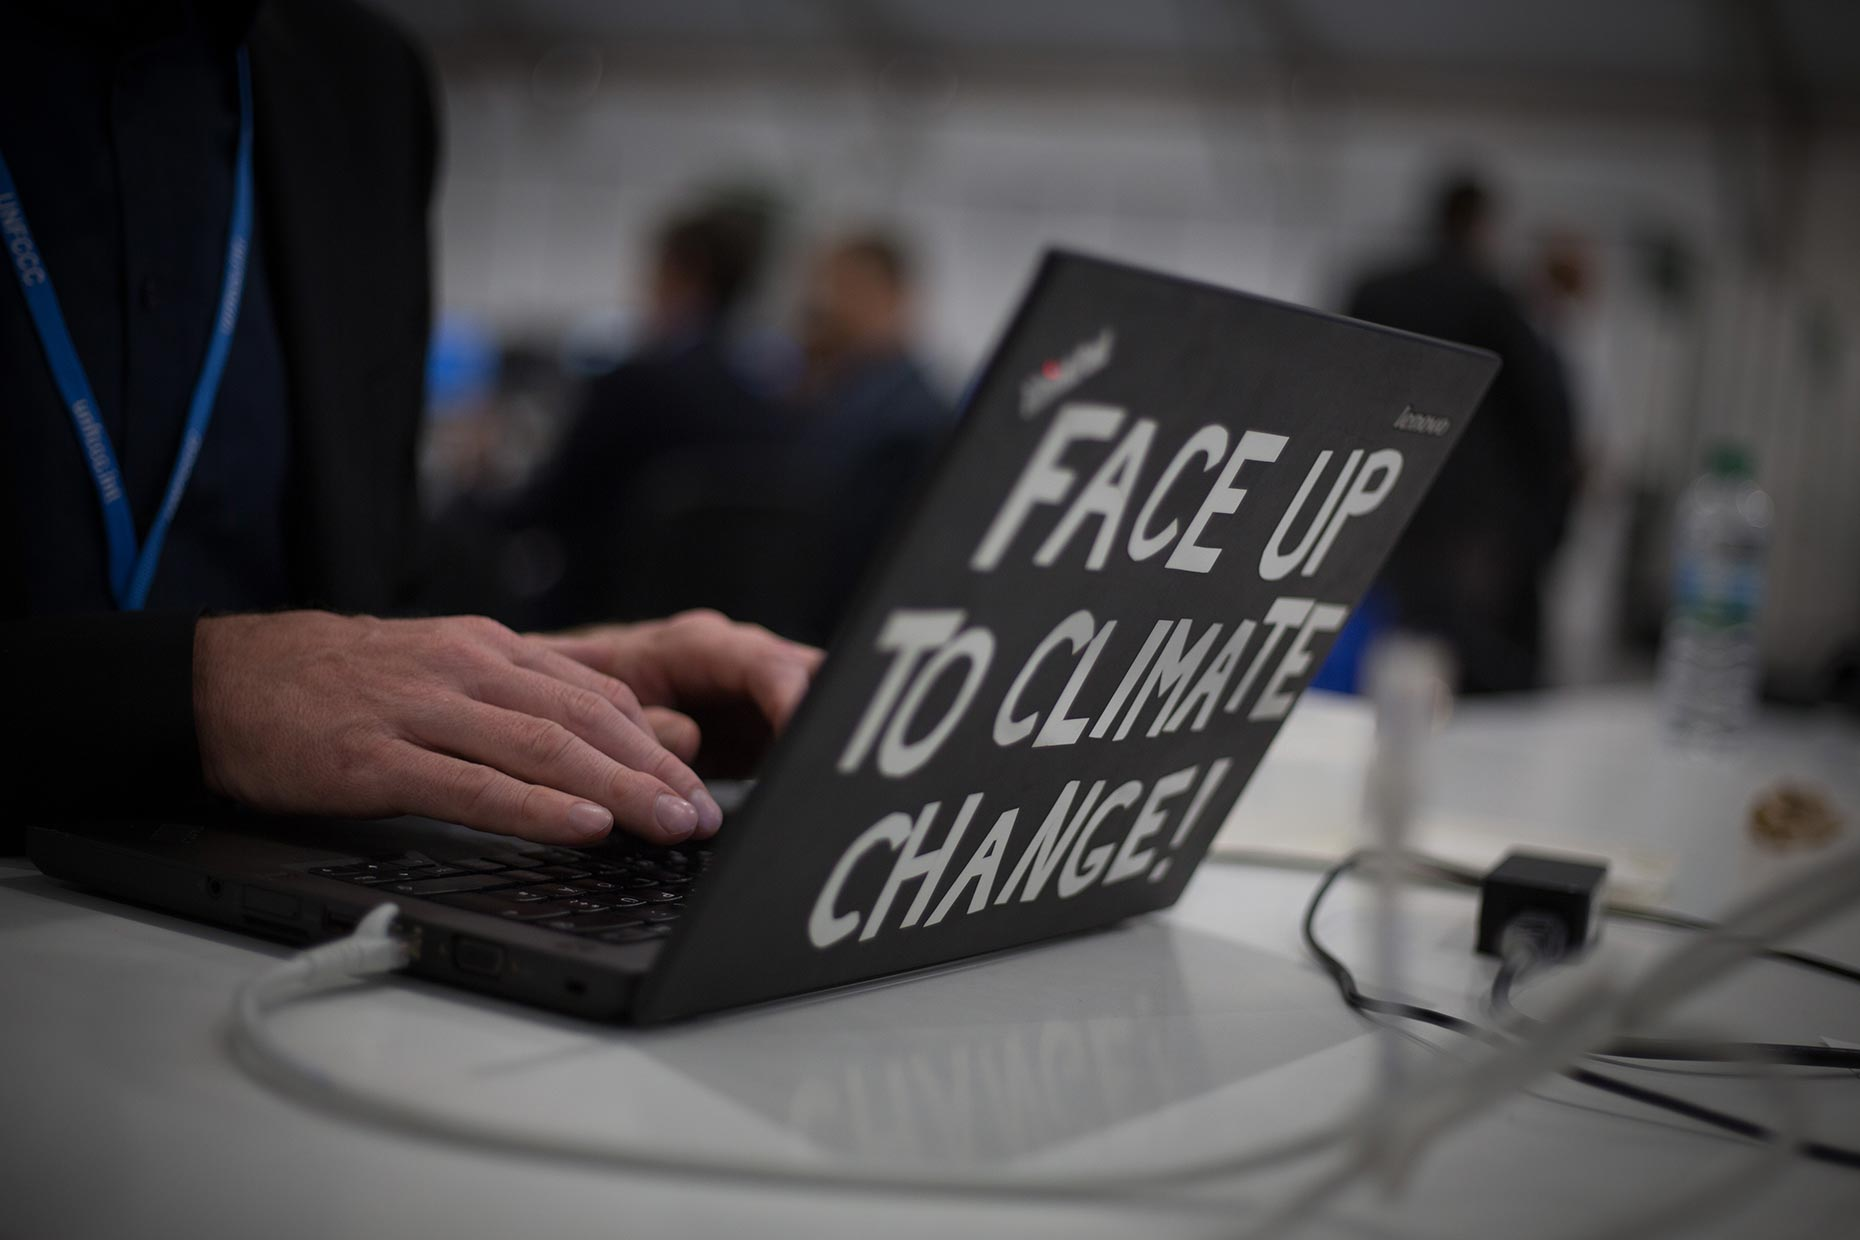 Climate Change on laptop, by Scotland Greenpeace photographer